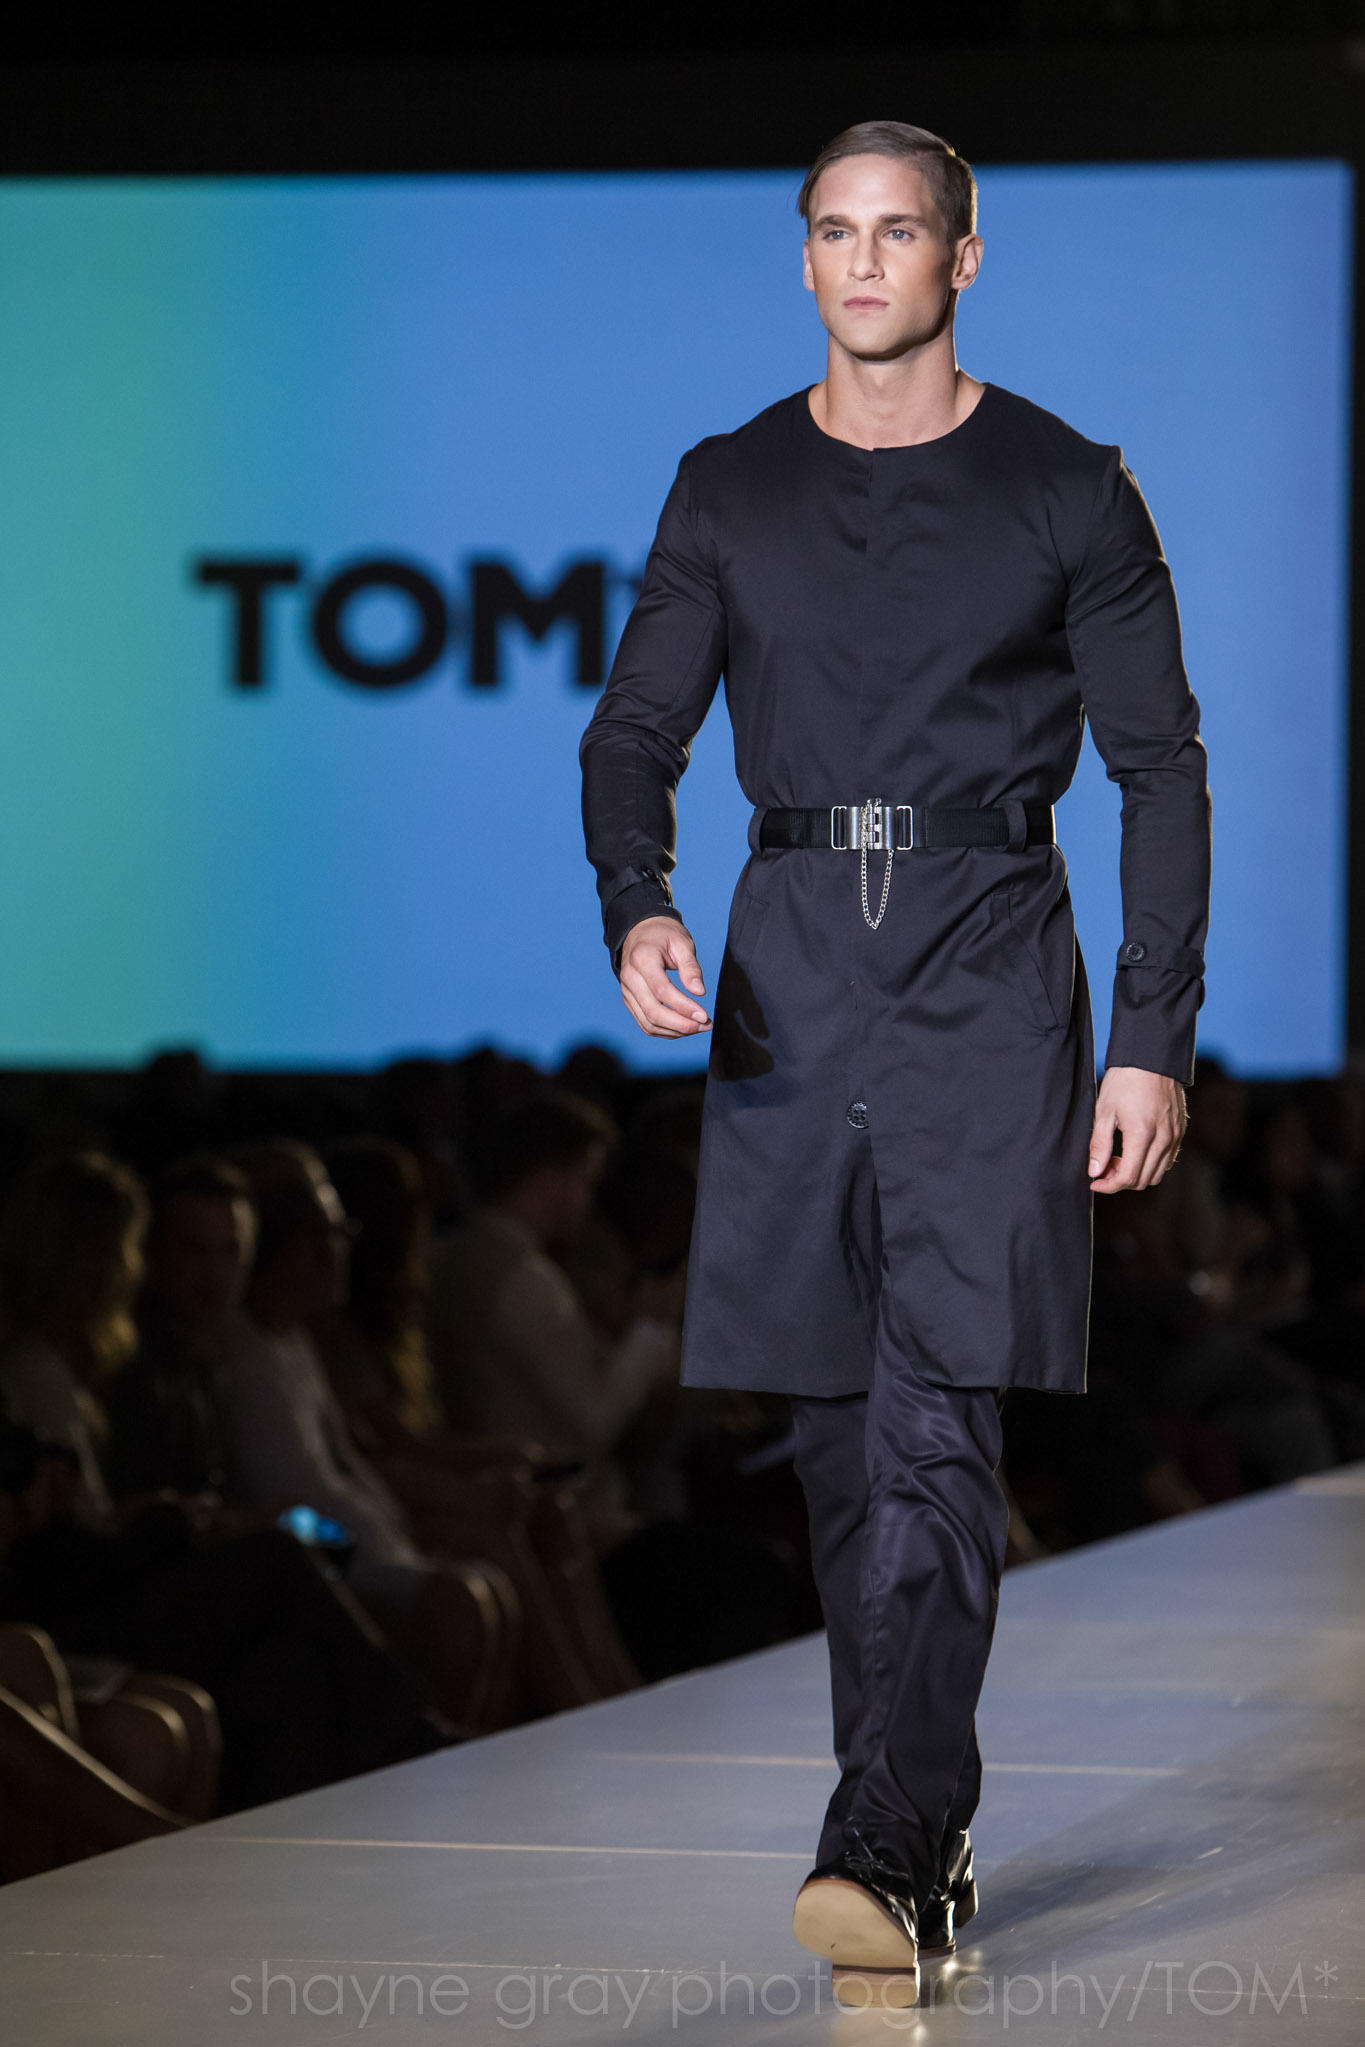 Shayne-Gray-Toronto-men's-fashion_week-TOM-paul-nathaphol-7989.jpg